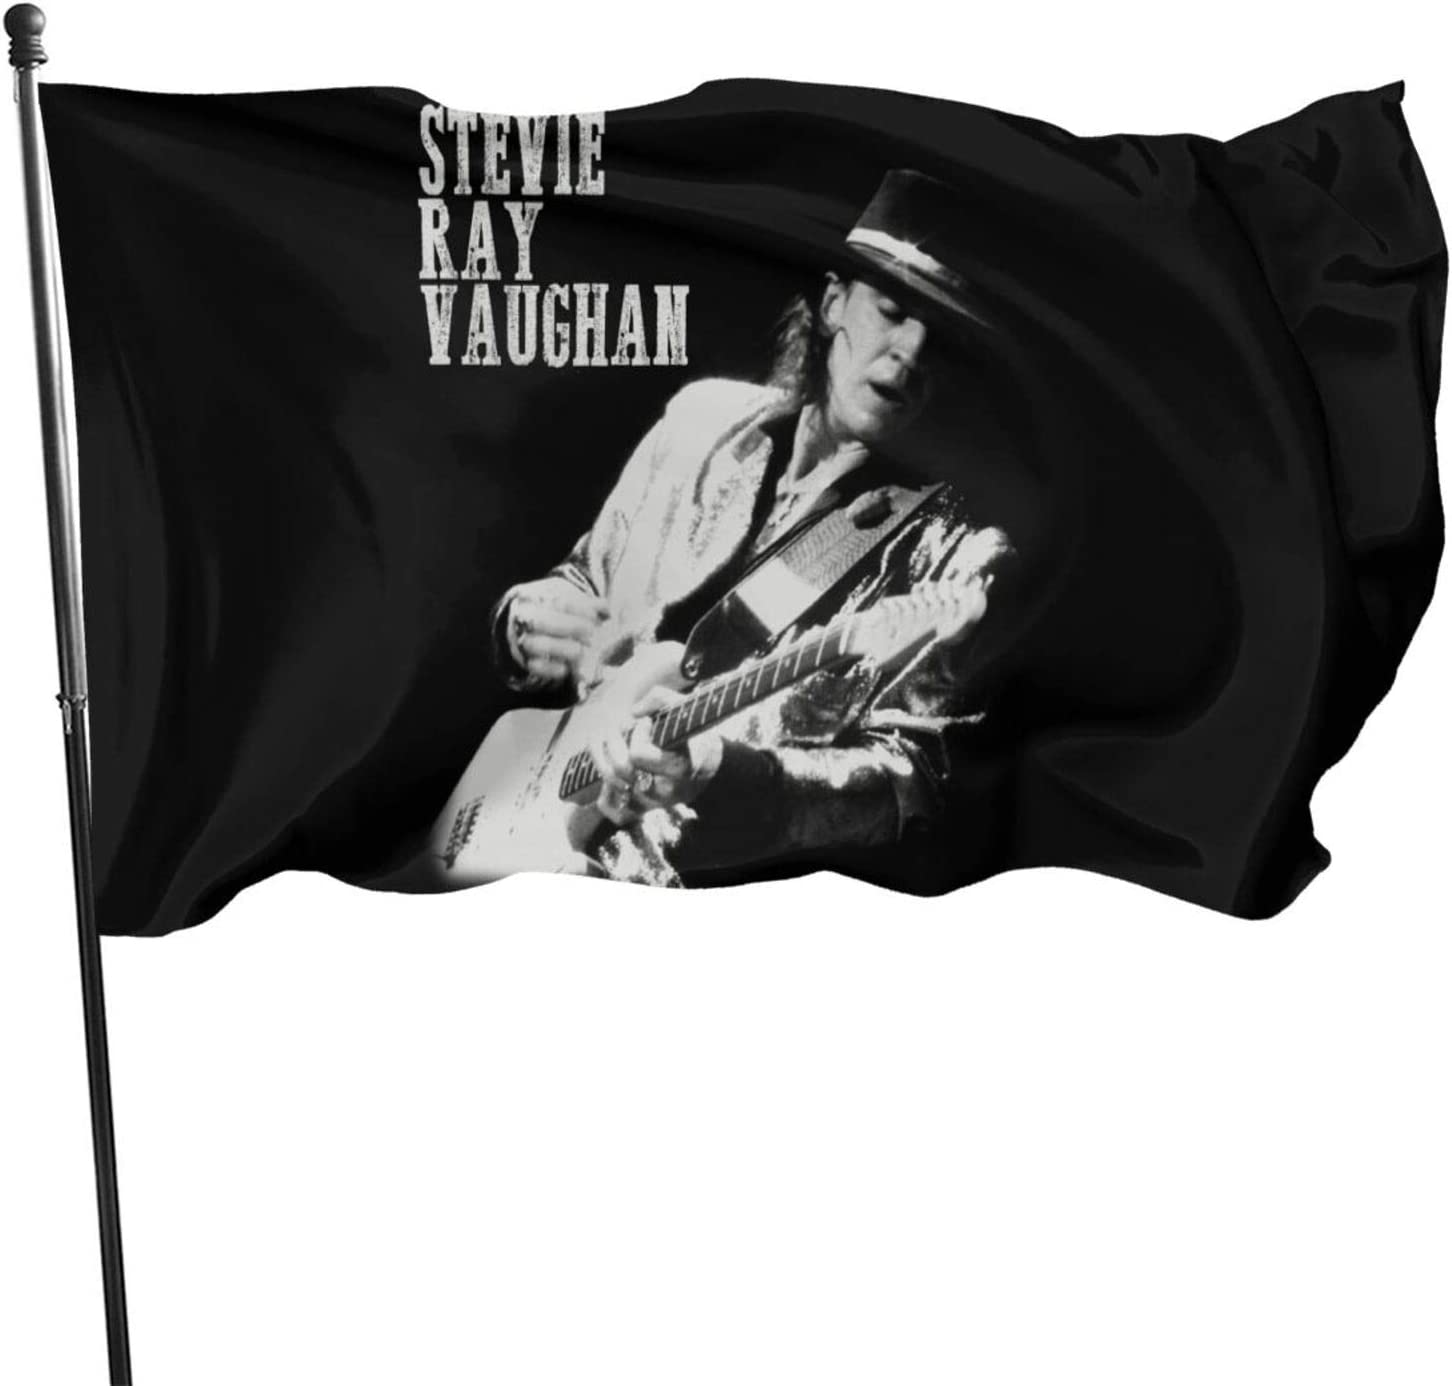 JaoStep Stevie Ray Vaughan Fashion Garden Flag New Welcome Banner Home Decorative Party Flags One Size